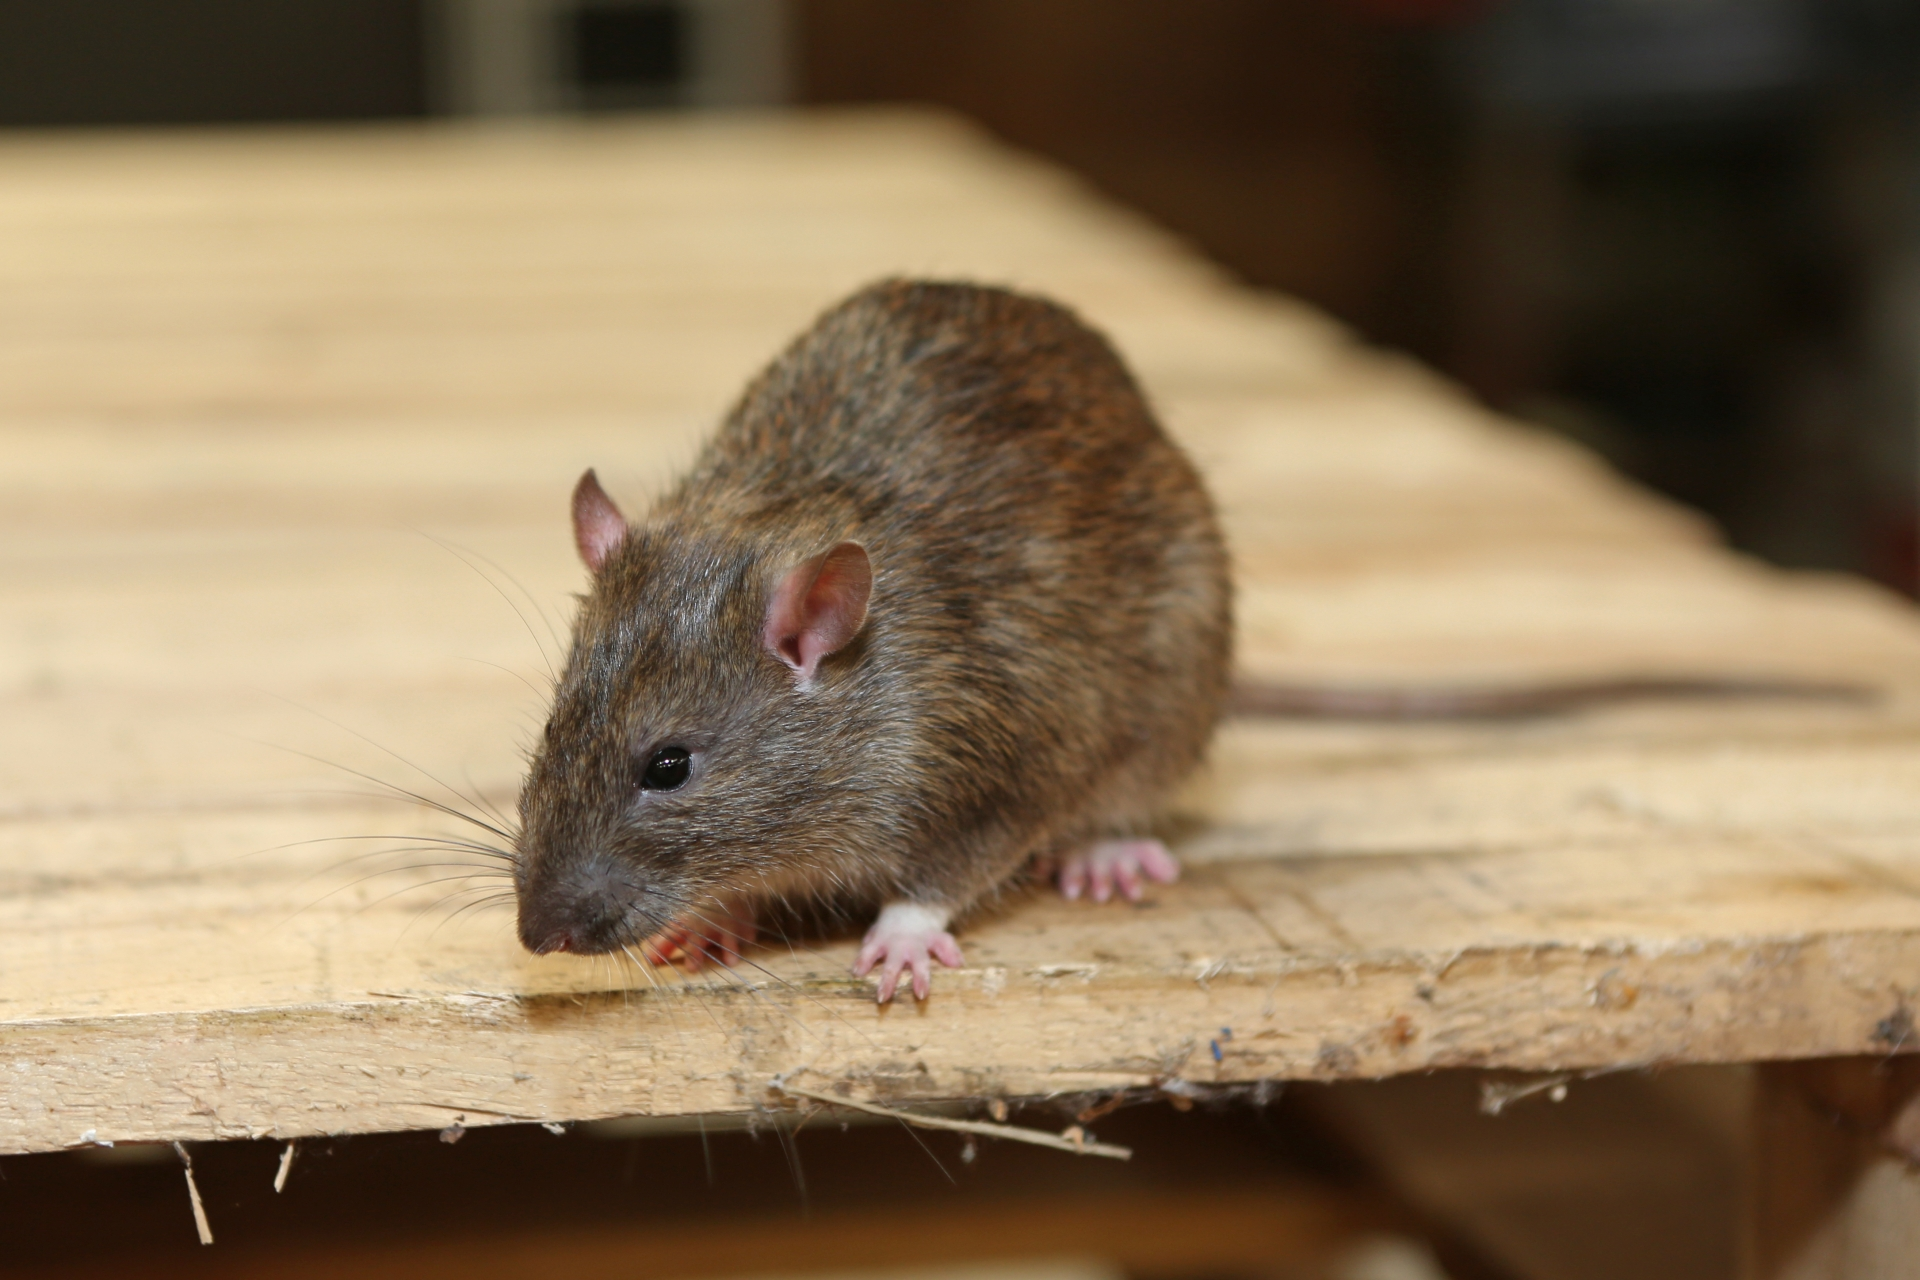 Rat Infestation, Pest Control in Manor Park, E12. Call Now 020 8166 9746